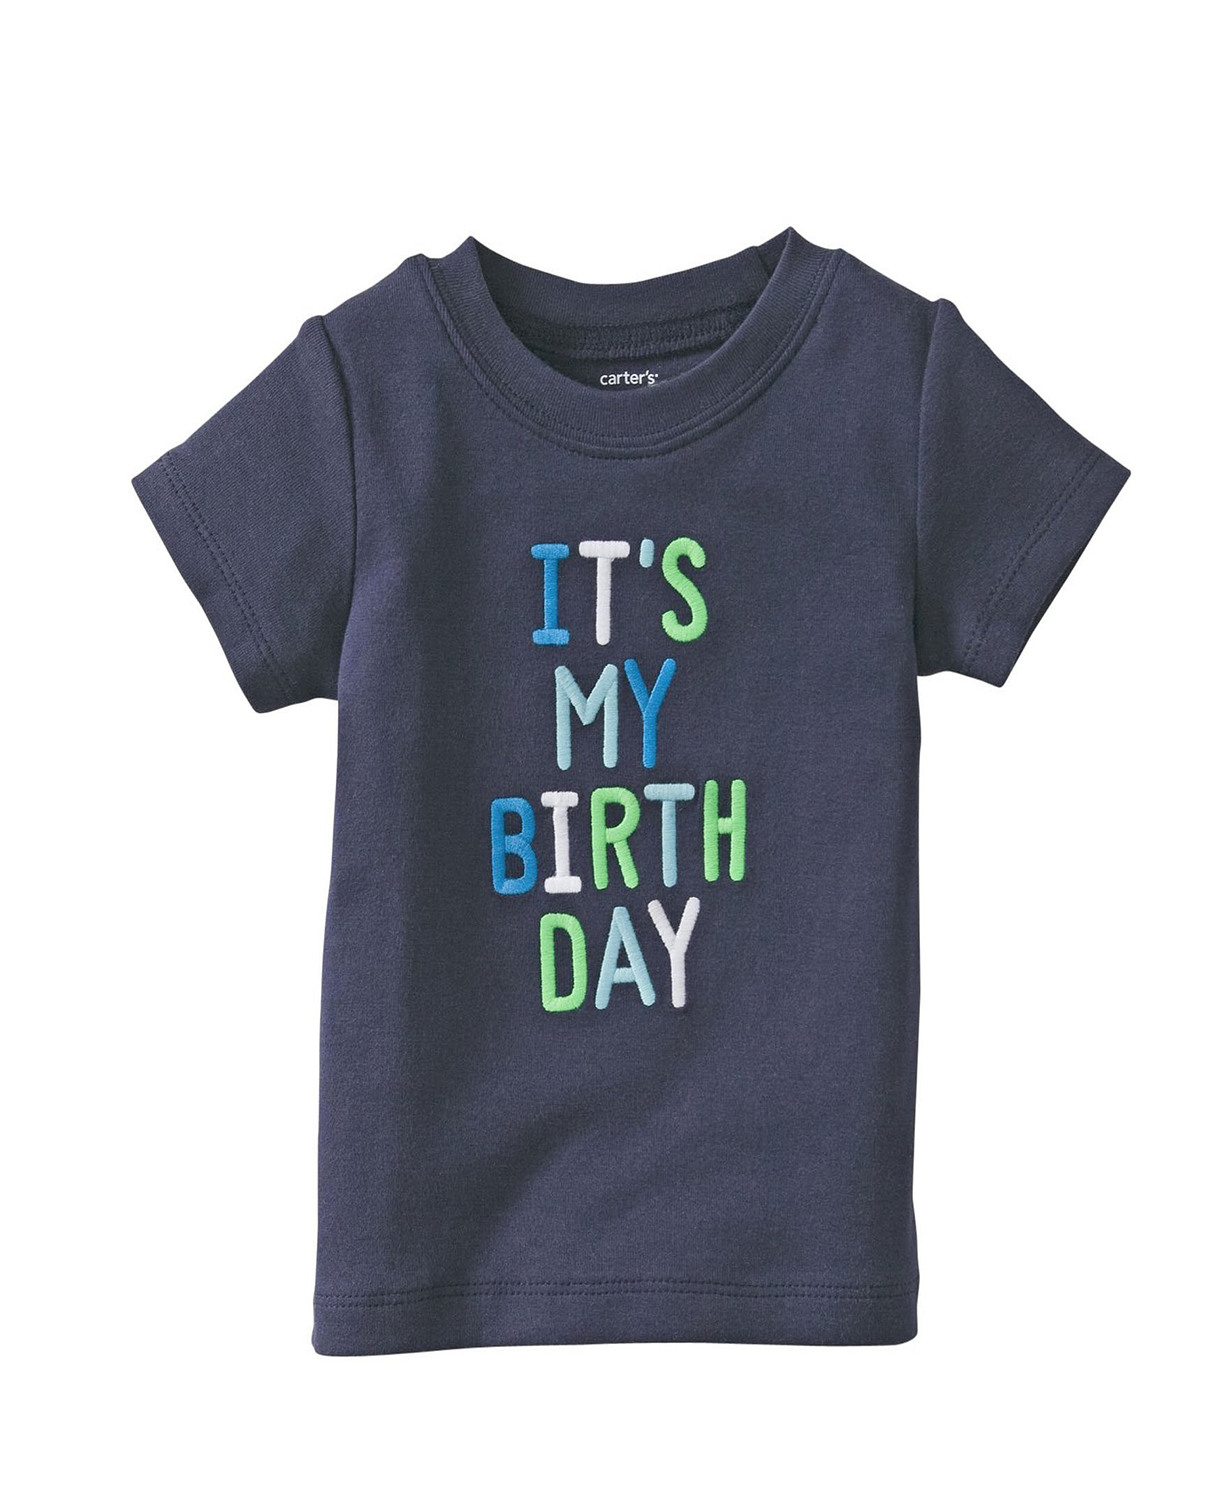 Cute Carters Baby Boys Birthday T Shirt Tee Clothes